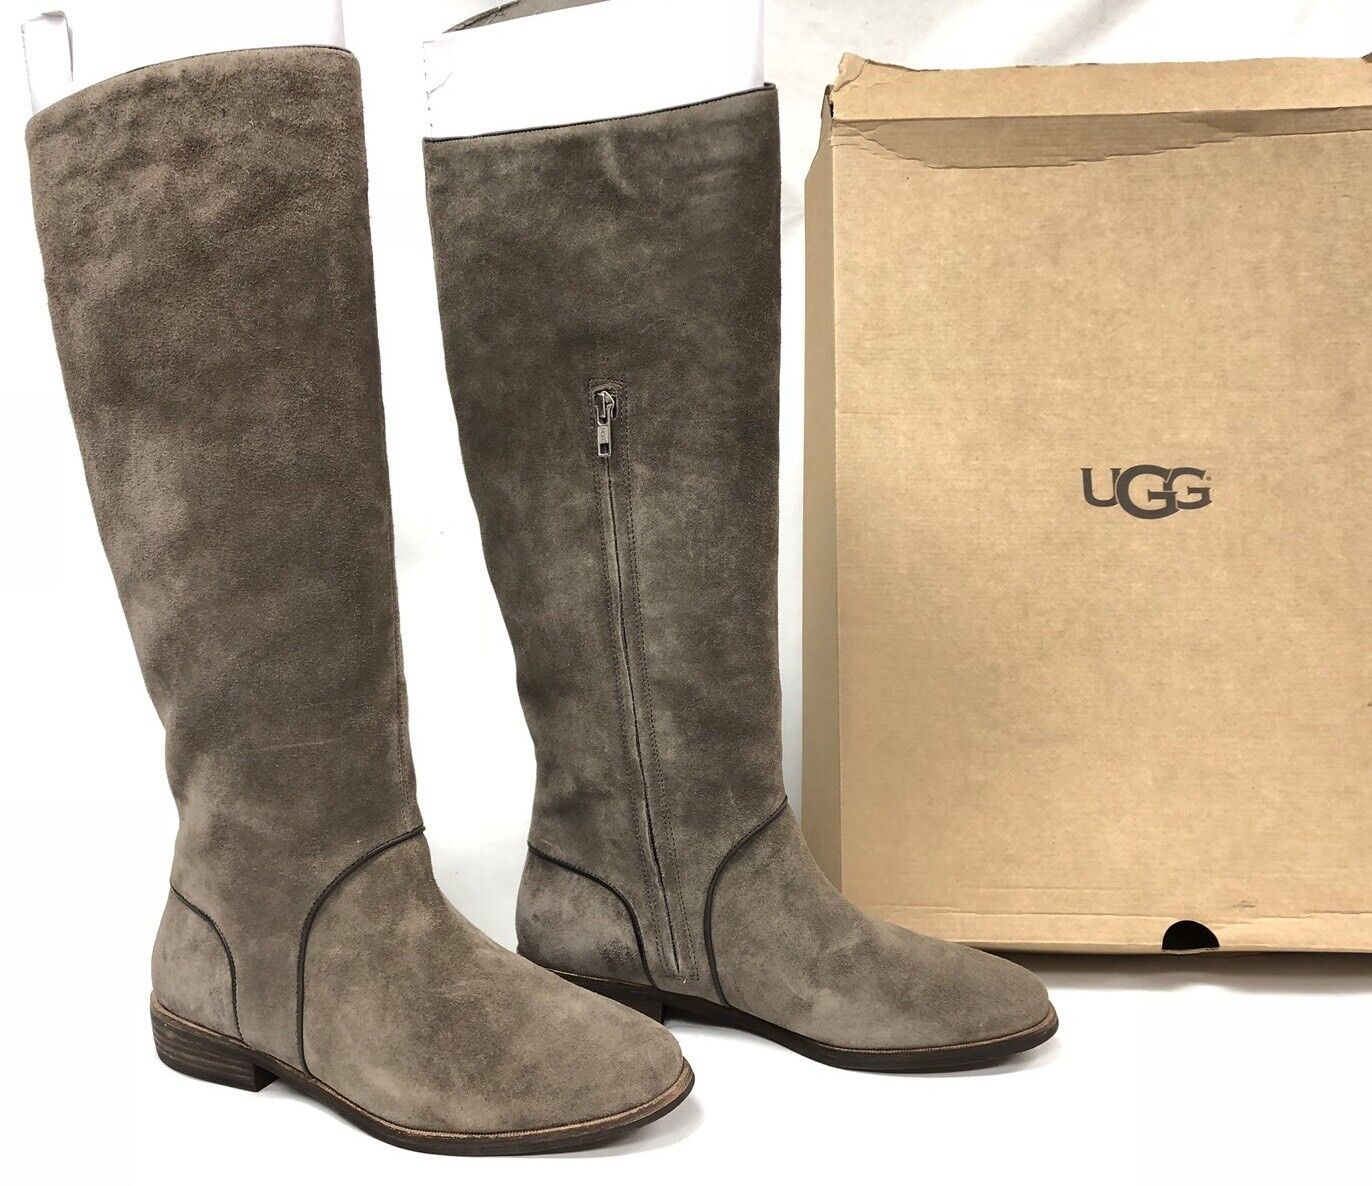 06499e162b0 UGG Australia Gracen Ridning Mouse Grågrå 8258 TALL Suede LEATHER ...